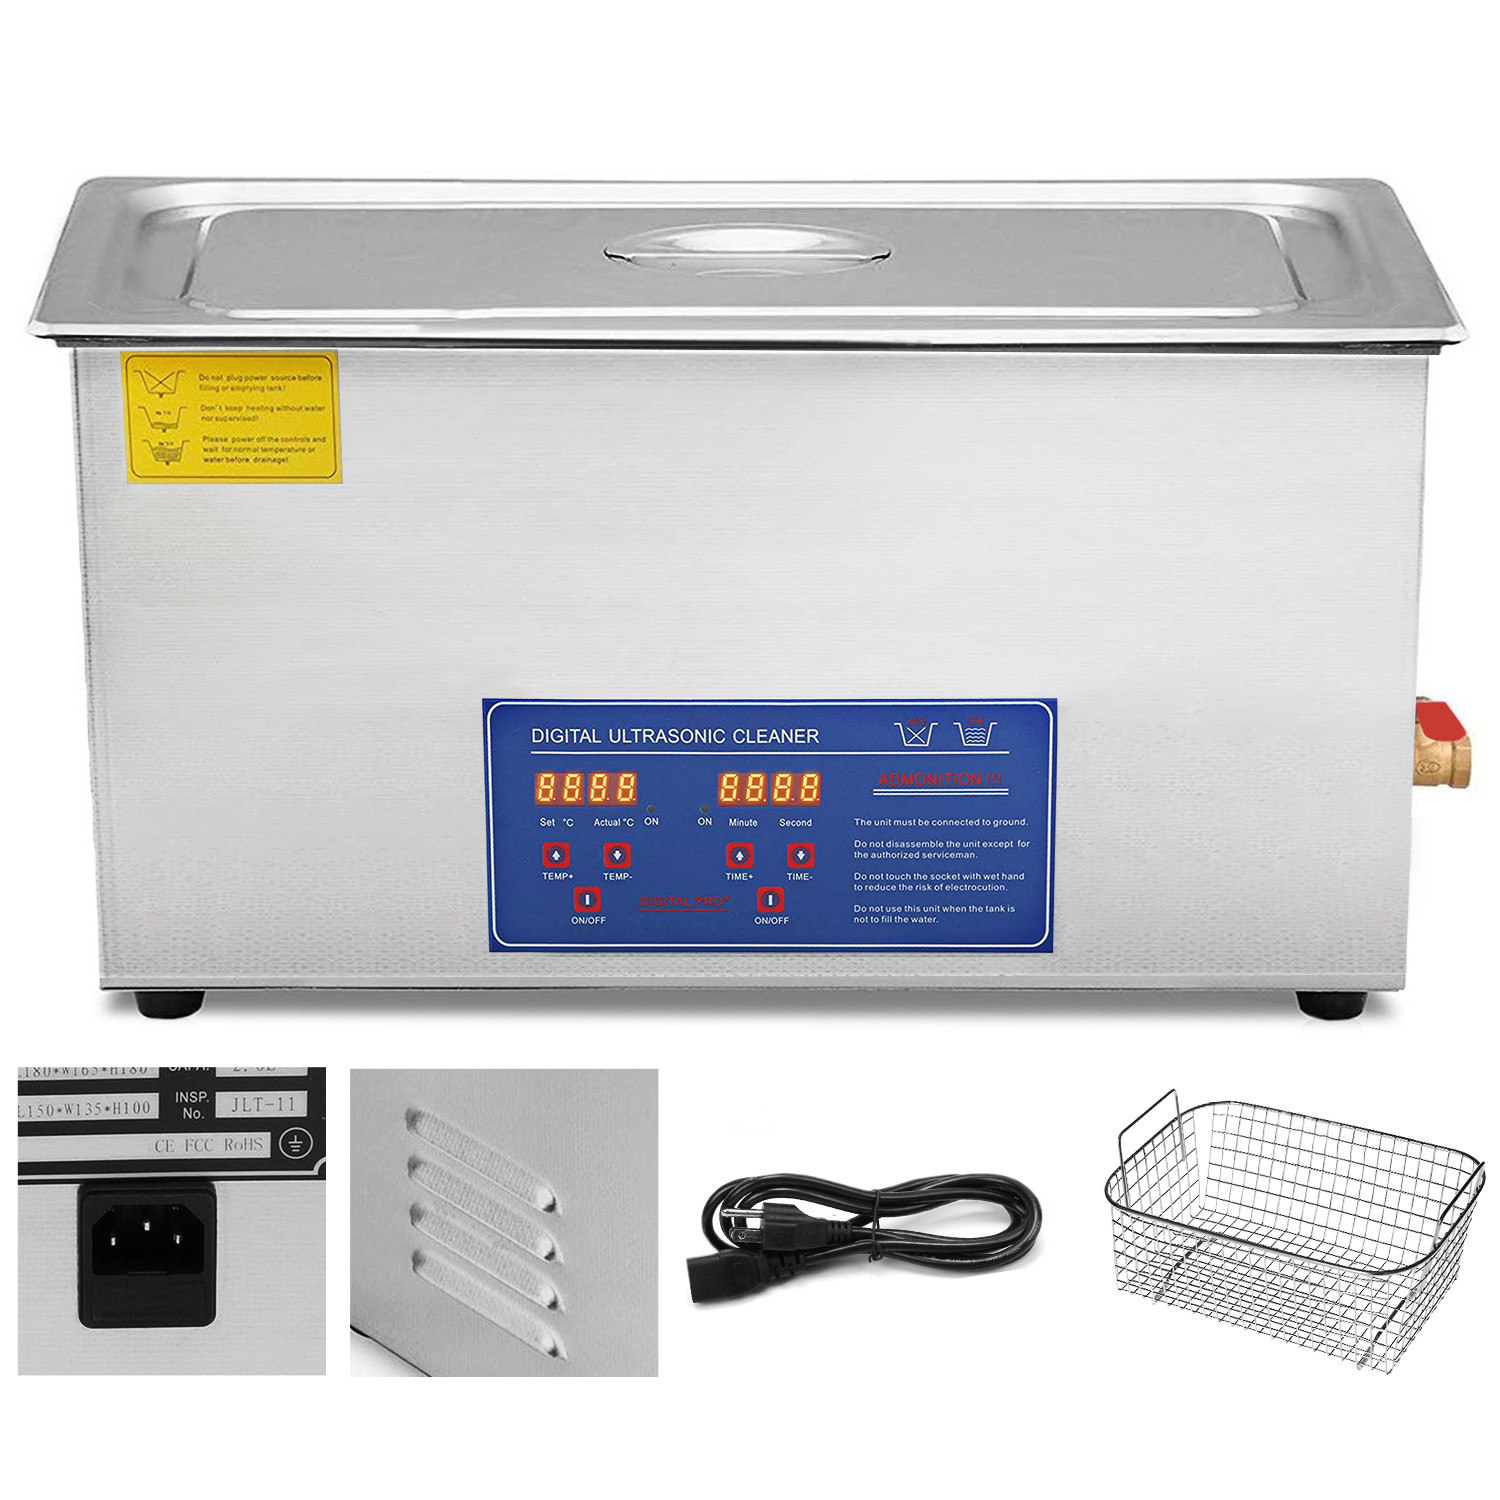 Multi-Ultrasonic-Cleaner-Supplies-Jewelry-1-3-2L-3L-6L-10L-15L-22L-30L thumbnail 108